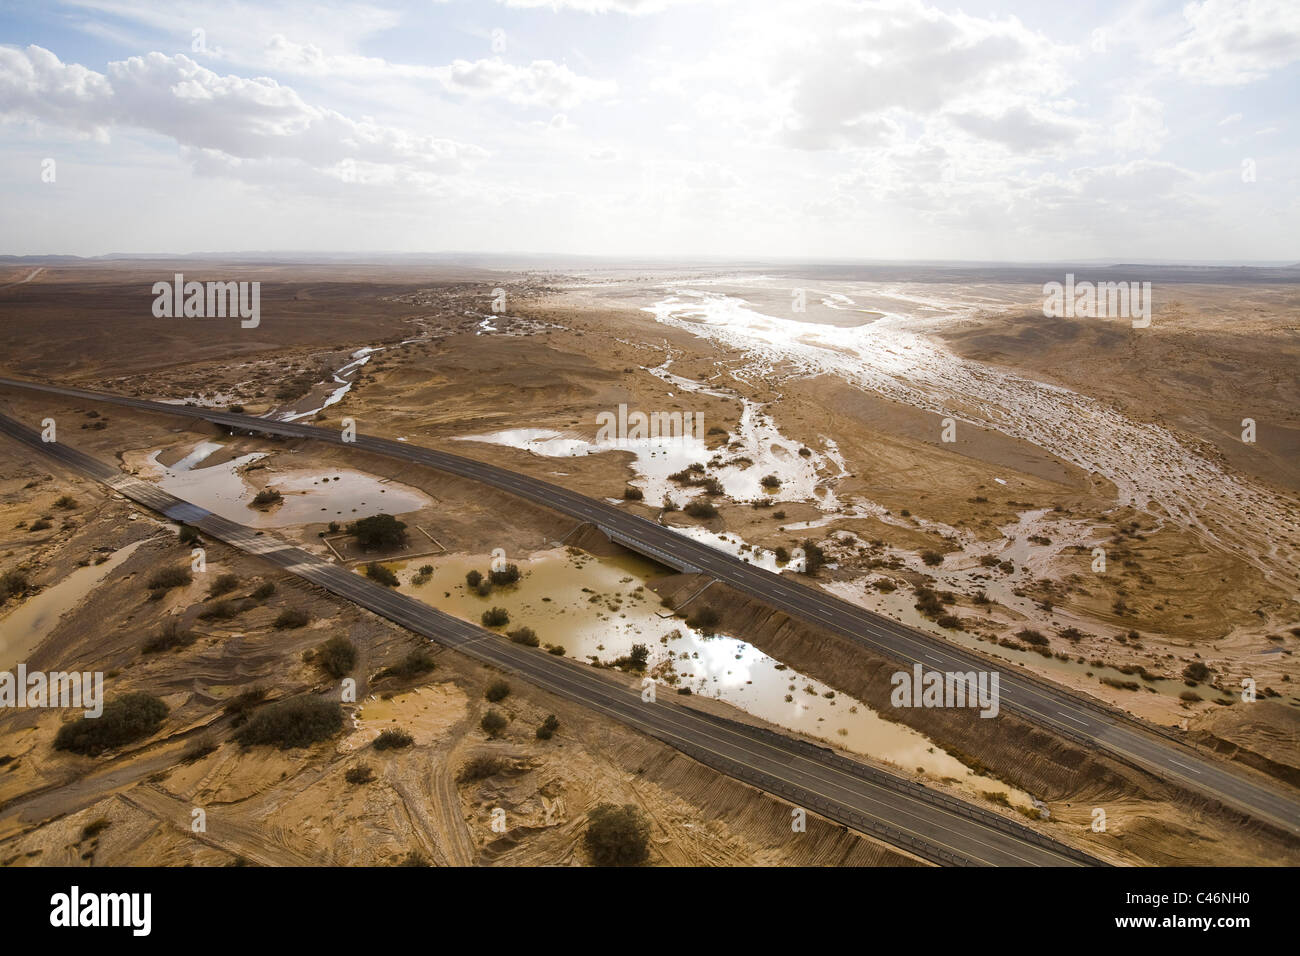 Aerial photograph of the floods in the Arava - Stock Image